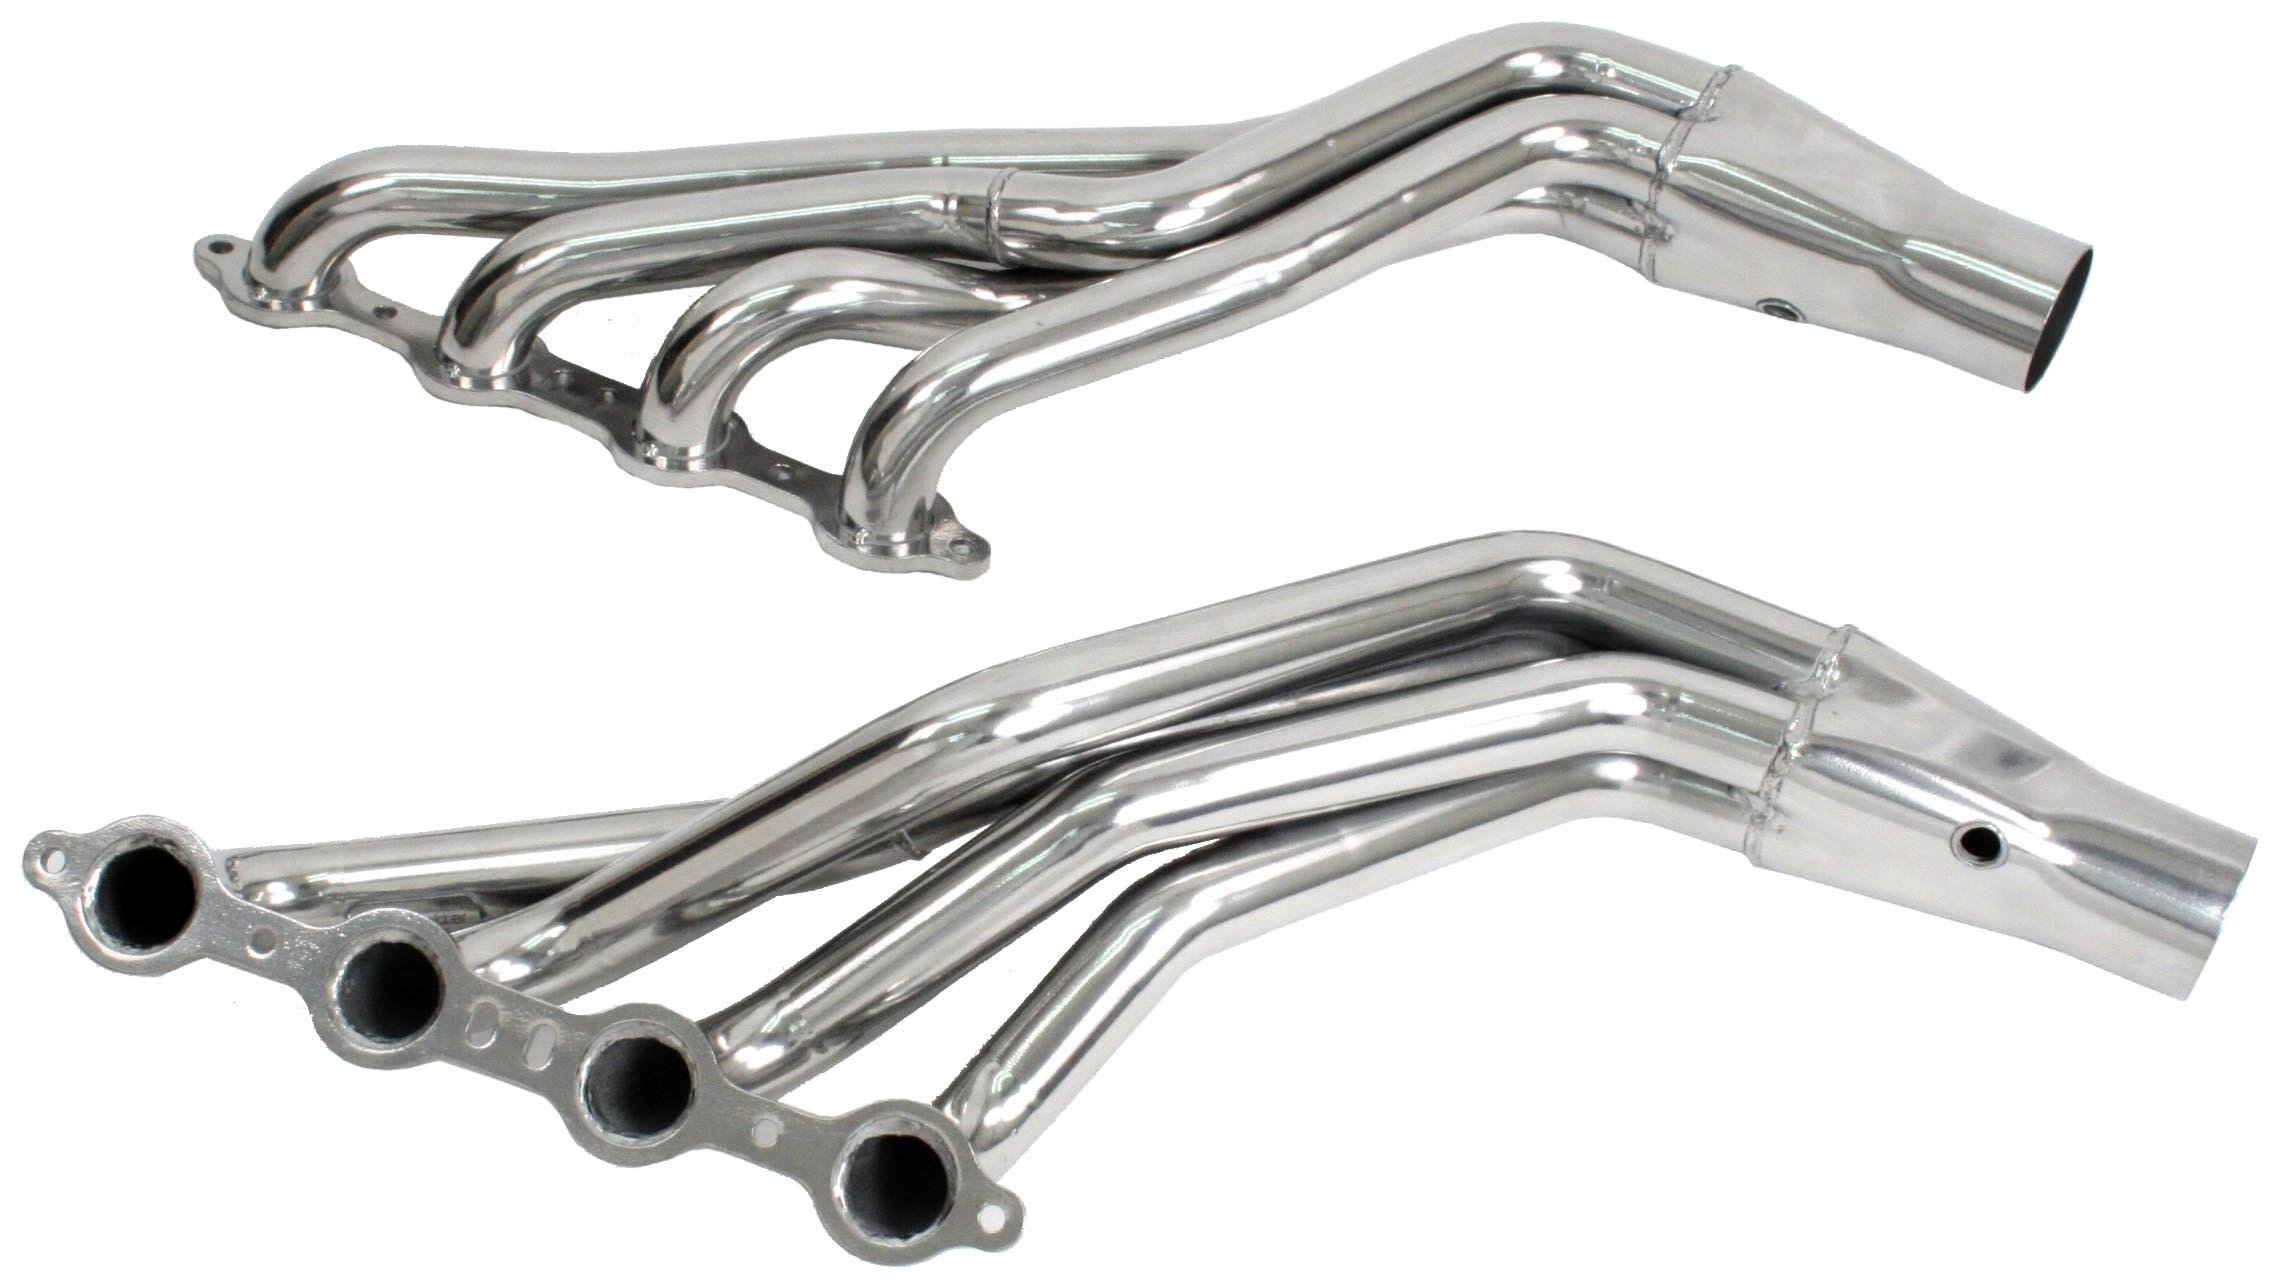 PaceSetter 72C2276 Long Tube Header with Armor Coat for 5.3L, 6.0L Chevy Trailblazer / GMC Envoy 2006-09 by Pacesetter (Image #1)